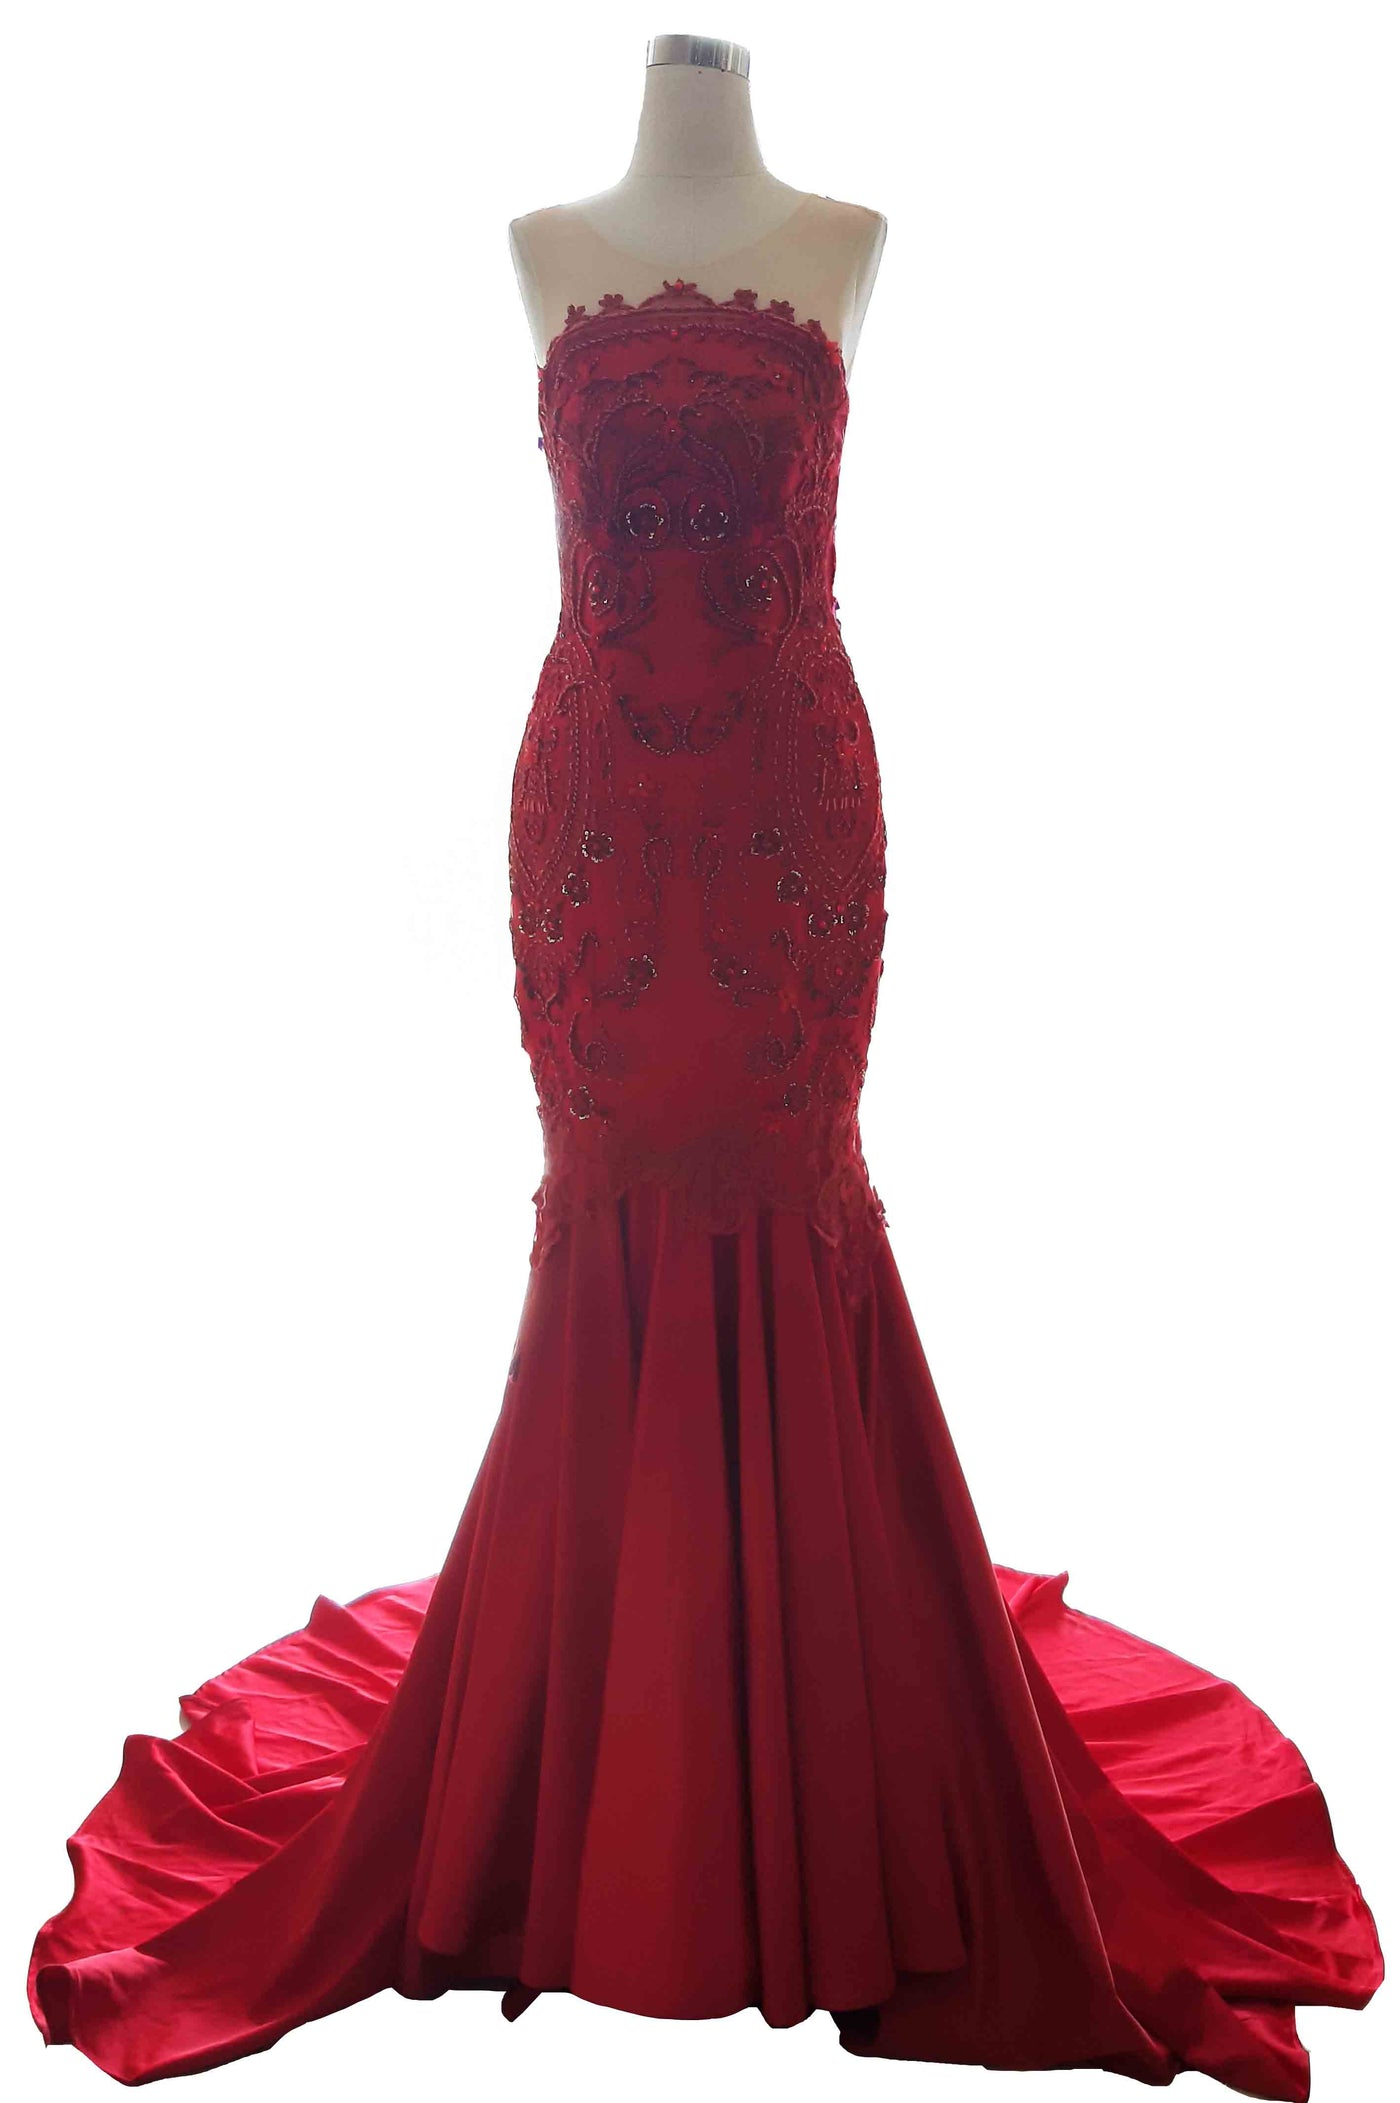 Rent: Private Label - Curved Strapless Red Mermaid Gown